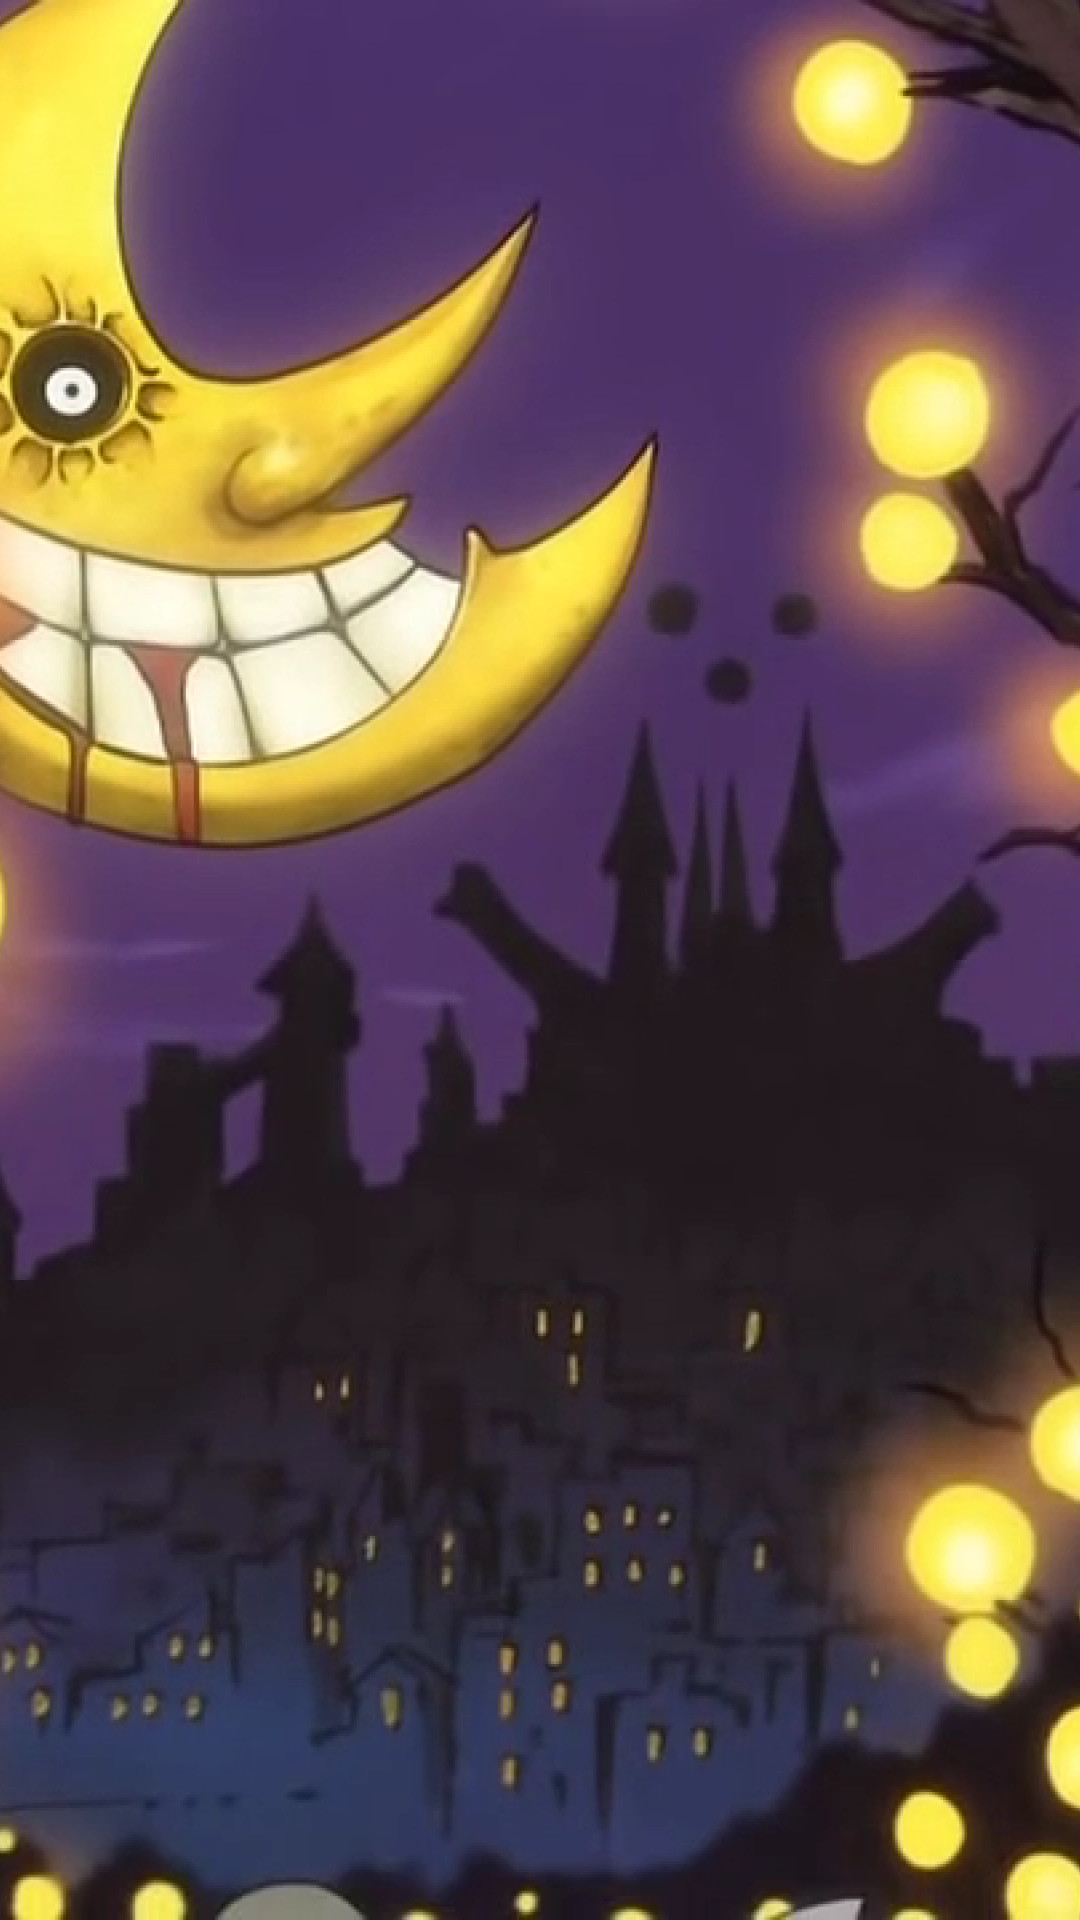 Res: 1080x1920, Soul Eater Moon Wallpaper, 23(Friday).03.2018 » Wallpapers PC Gallery,